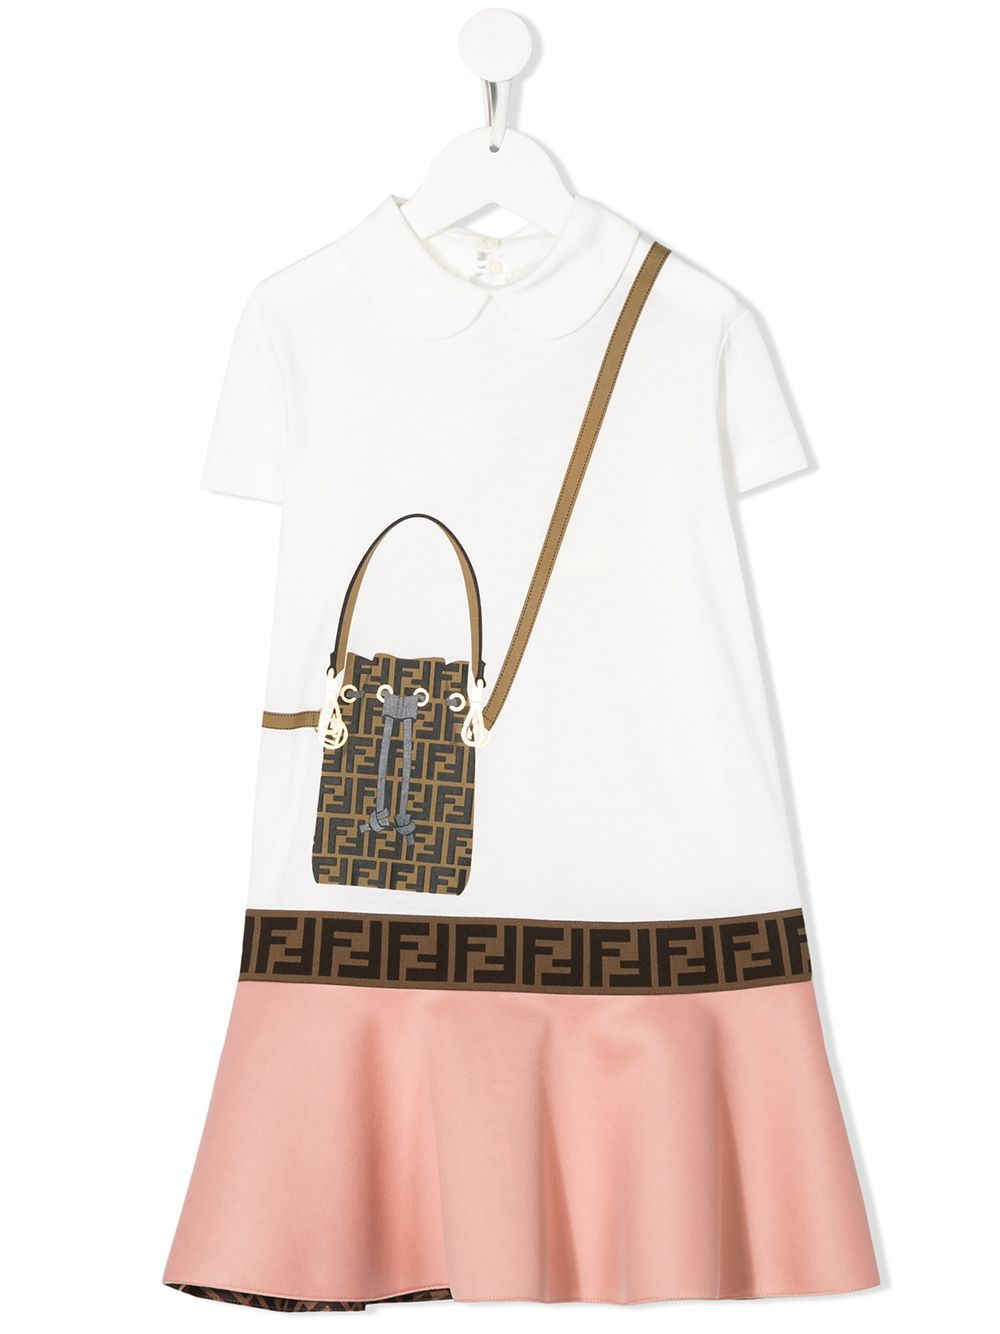 FENDI KIDS FF handbag print dress white/pink